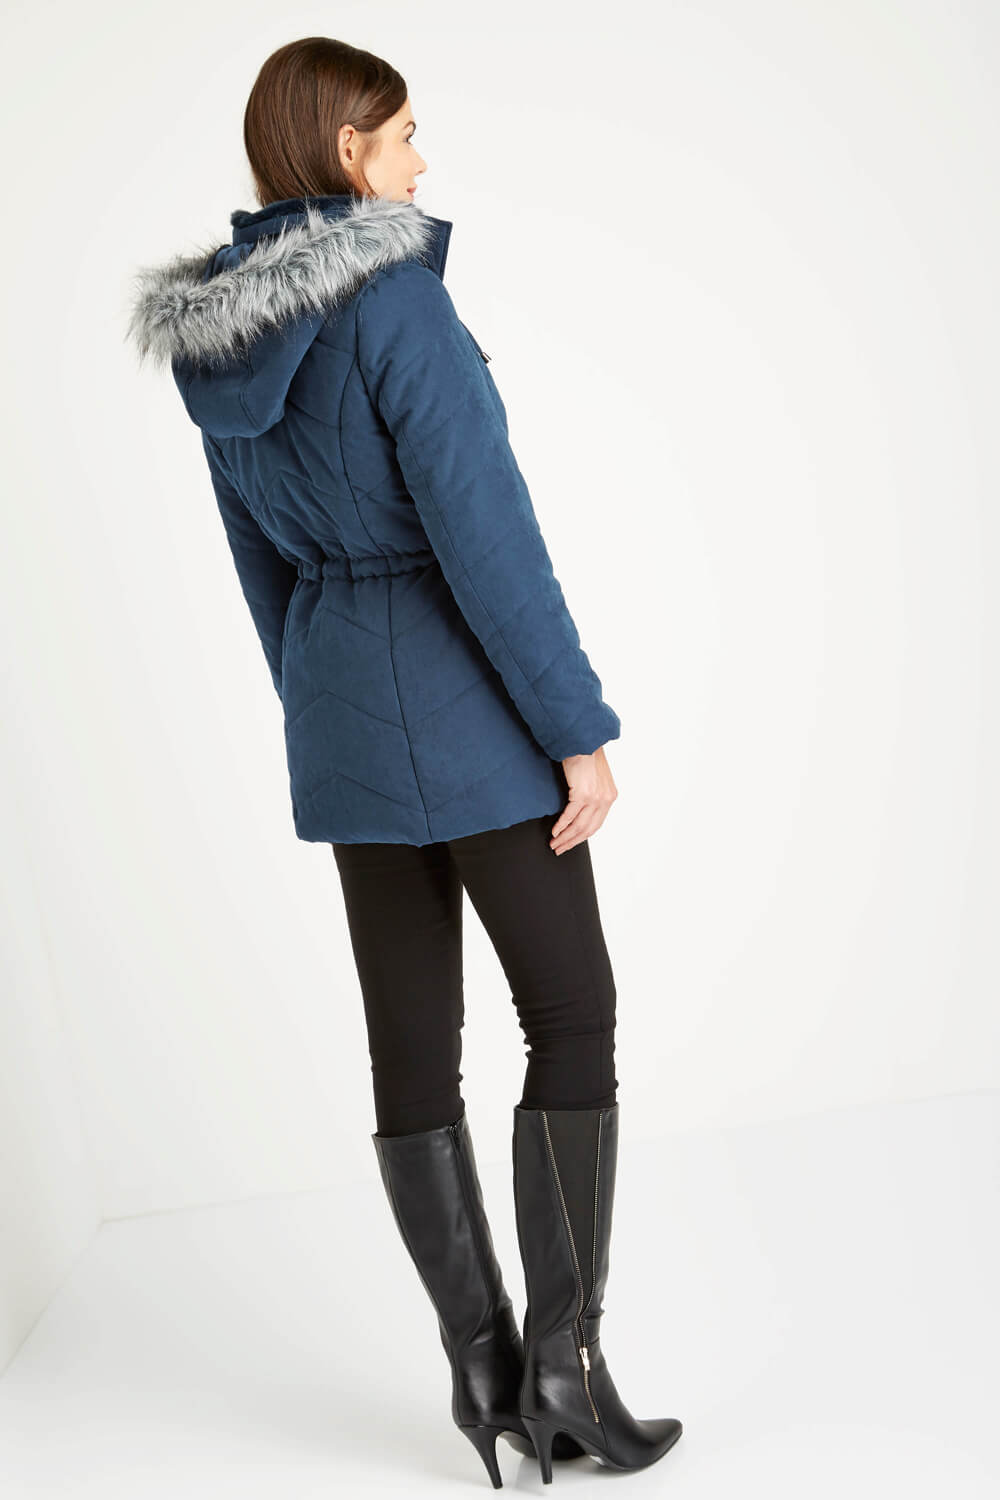 Roman-Originals-Women-039-s-Blue-Quilted-Parka-Coat-with-Hood-Sizes-10-20 thumbnail 15